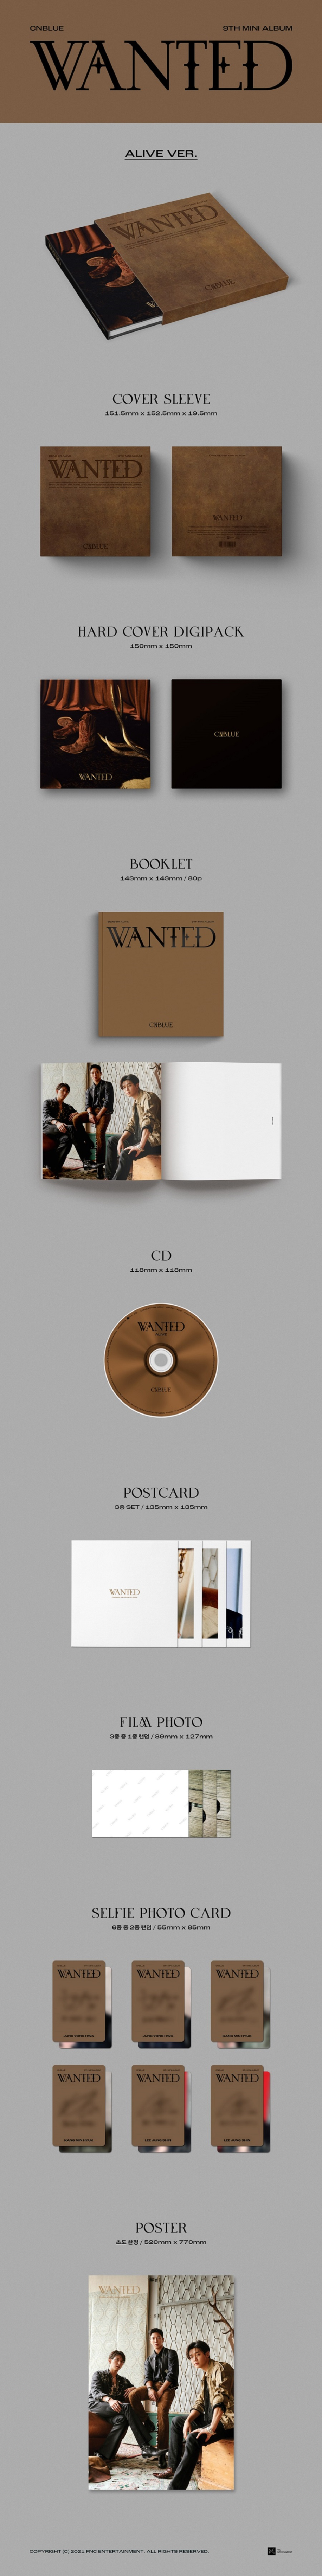 CNBLUE - WANTED []